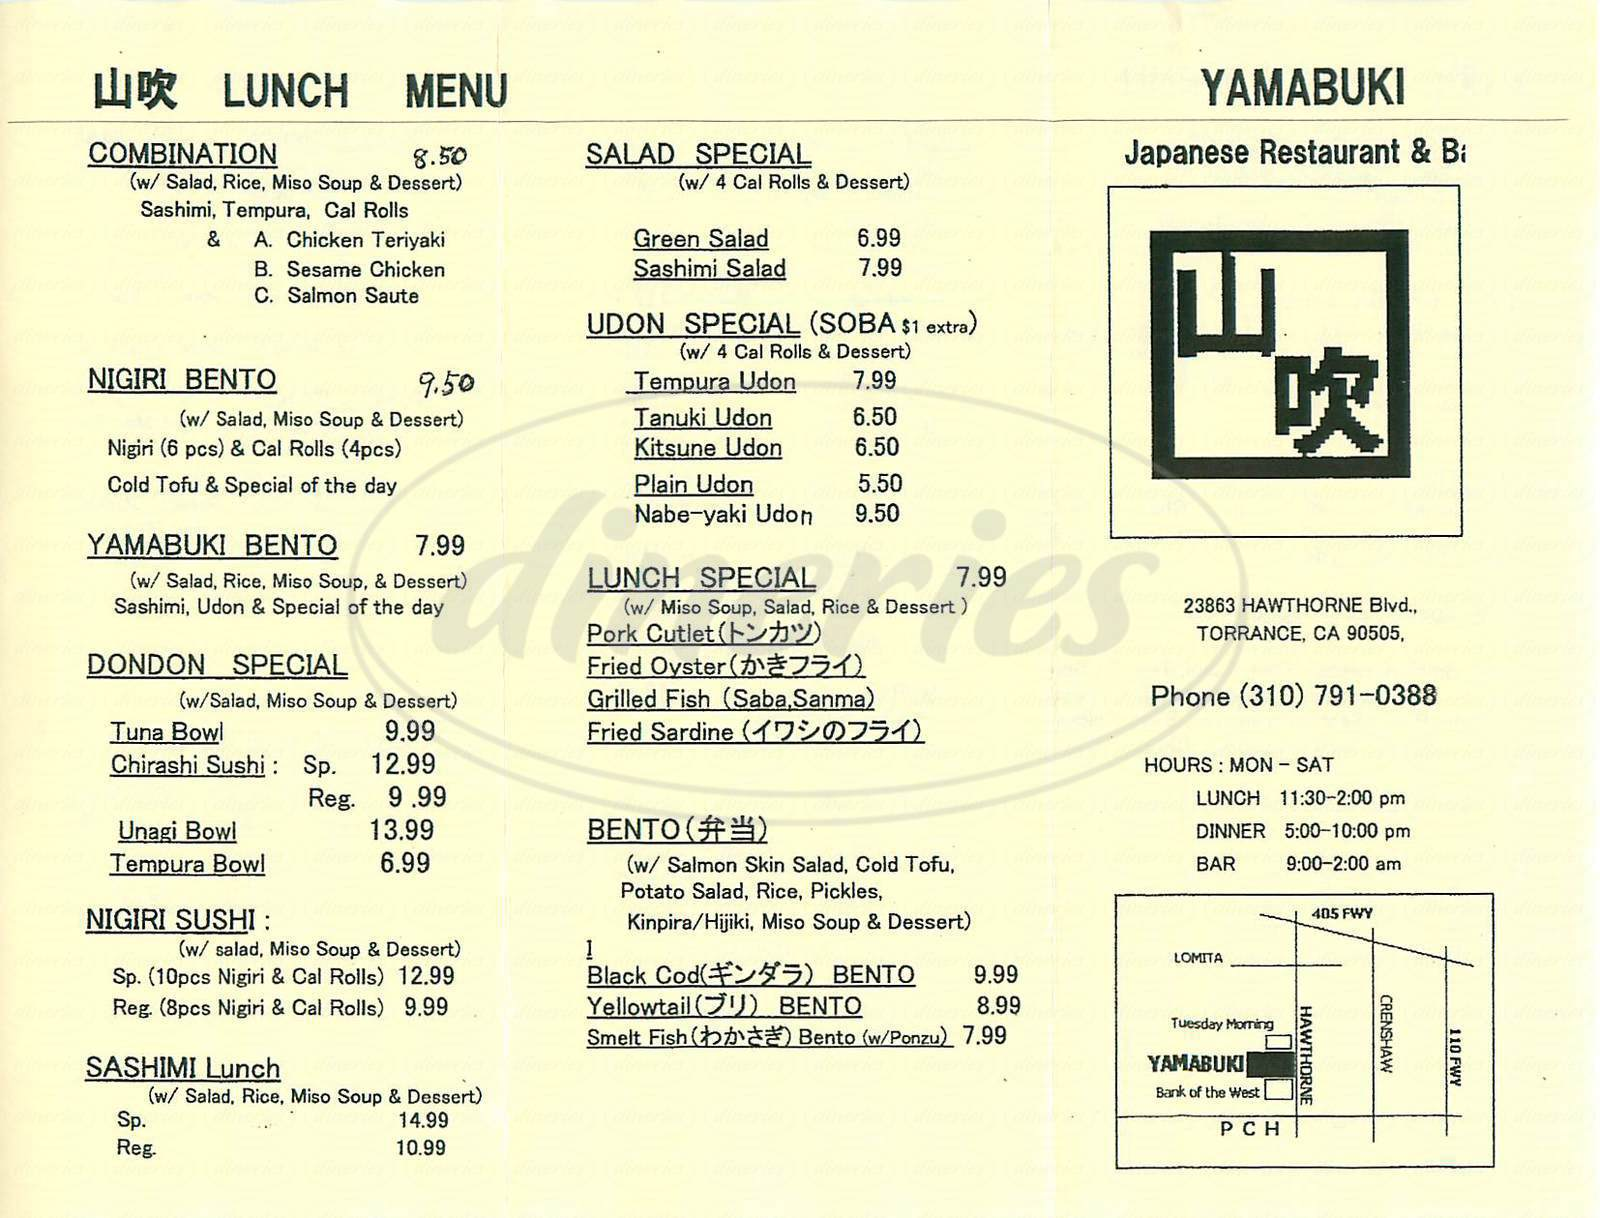 menu for Yamabuki Restaurant & Bar